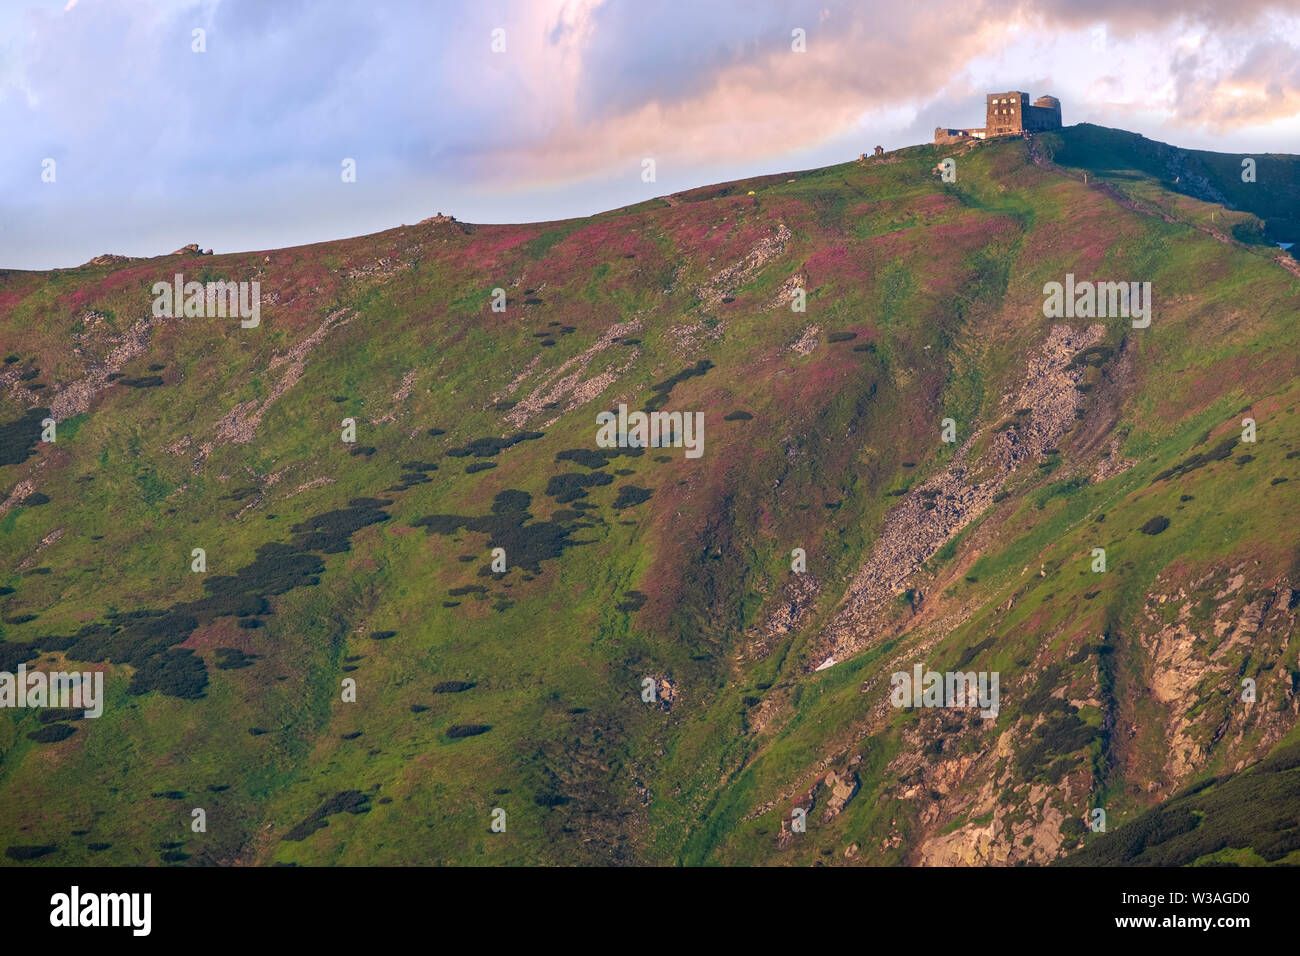 Massif of Pip Ivan with the ruins of the observatory on top. Pink rhododendron flowers on summer sunrise mountain slope, Carpathian, Chornohora, Ukrai - Stock Image